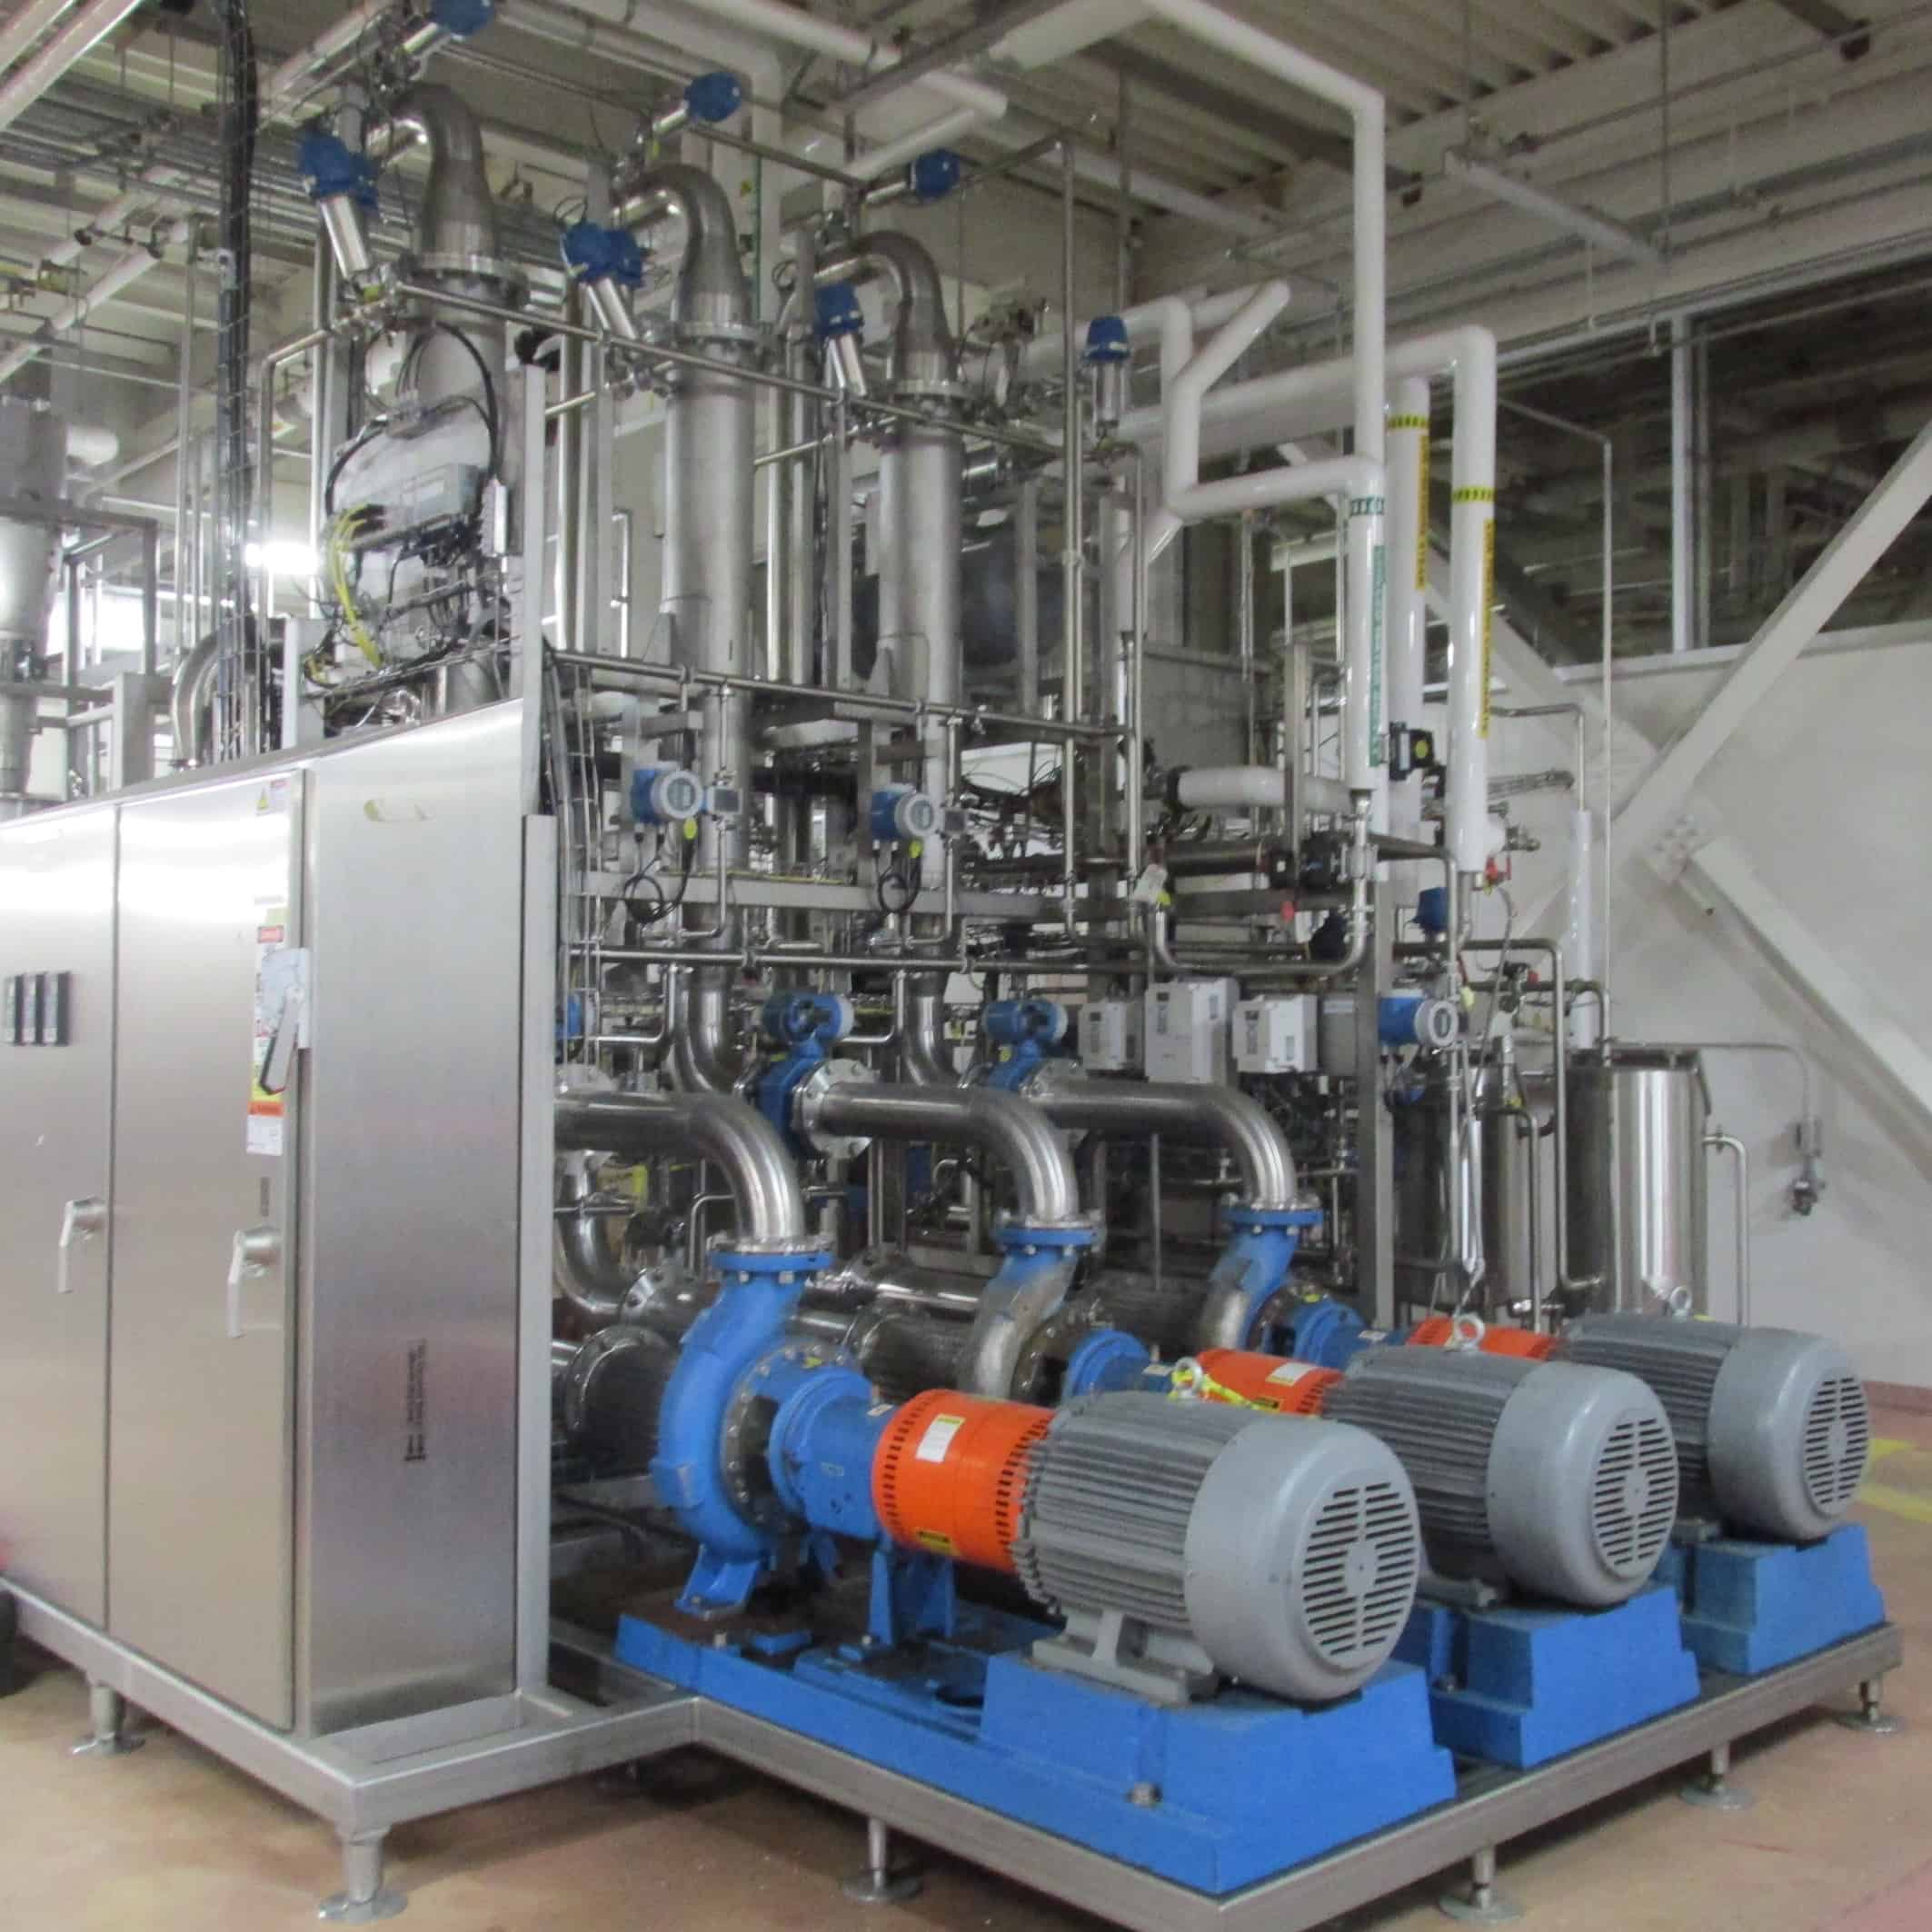 "2011 GEA 3-Stage Cross Flow Micro Filtration System, GEA Process Engineering Contract # 3099-1026, Type E2 Extract Fractionation, Feed Rate 16-22 Kg/Min, Permeate 80% of Feed, Each Stage 14.5 m2, temp 92-95 C, Recirculation Flow 5,800-6,000 L/Min, Target Solids Recovery Min 45%, Tubular SS 0.5 mm Pore Size 3/8"" Tube Dia., CIP Caustic 6%"